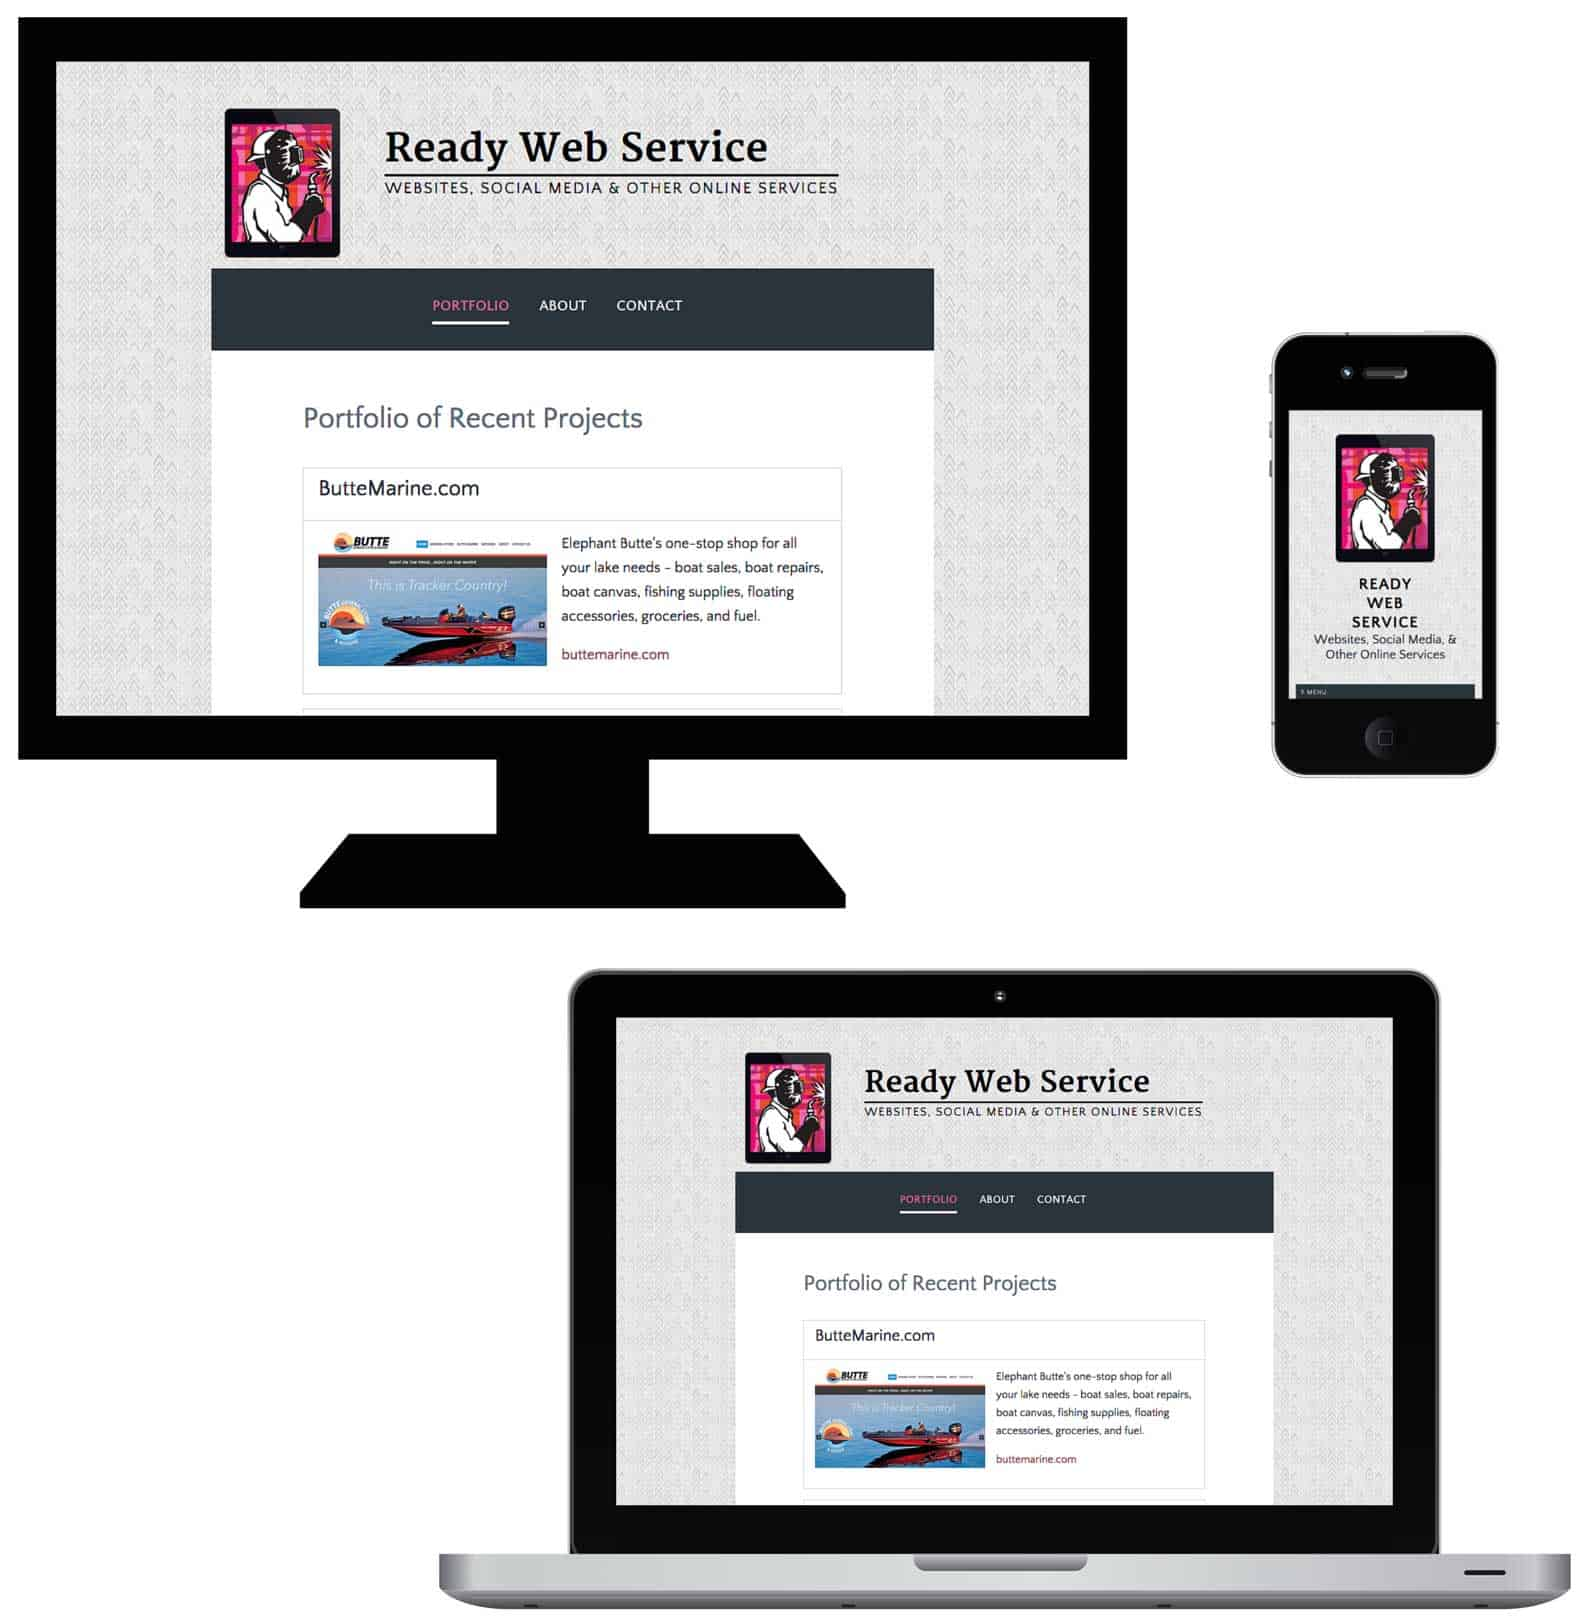 responsive web design by Ruanna Waldrum